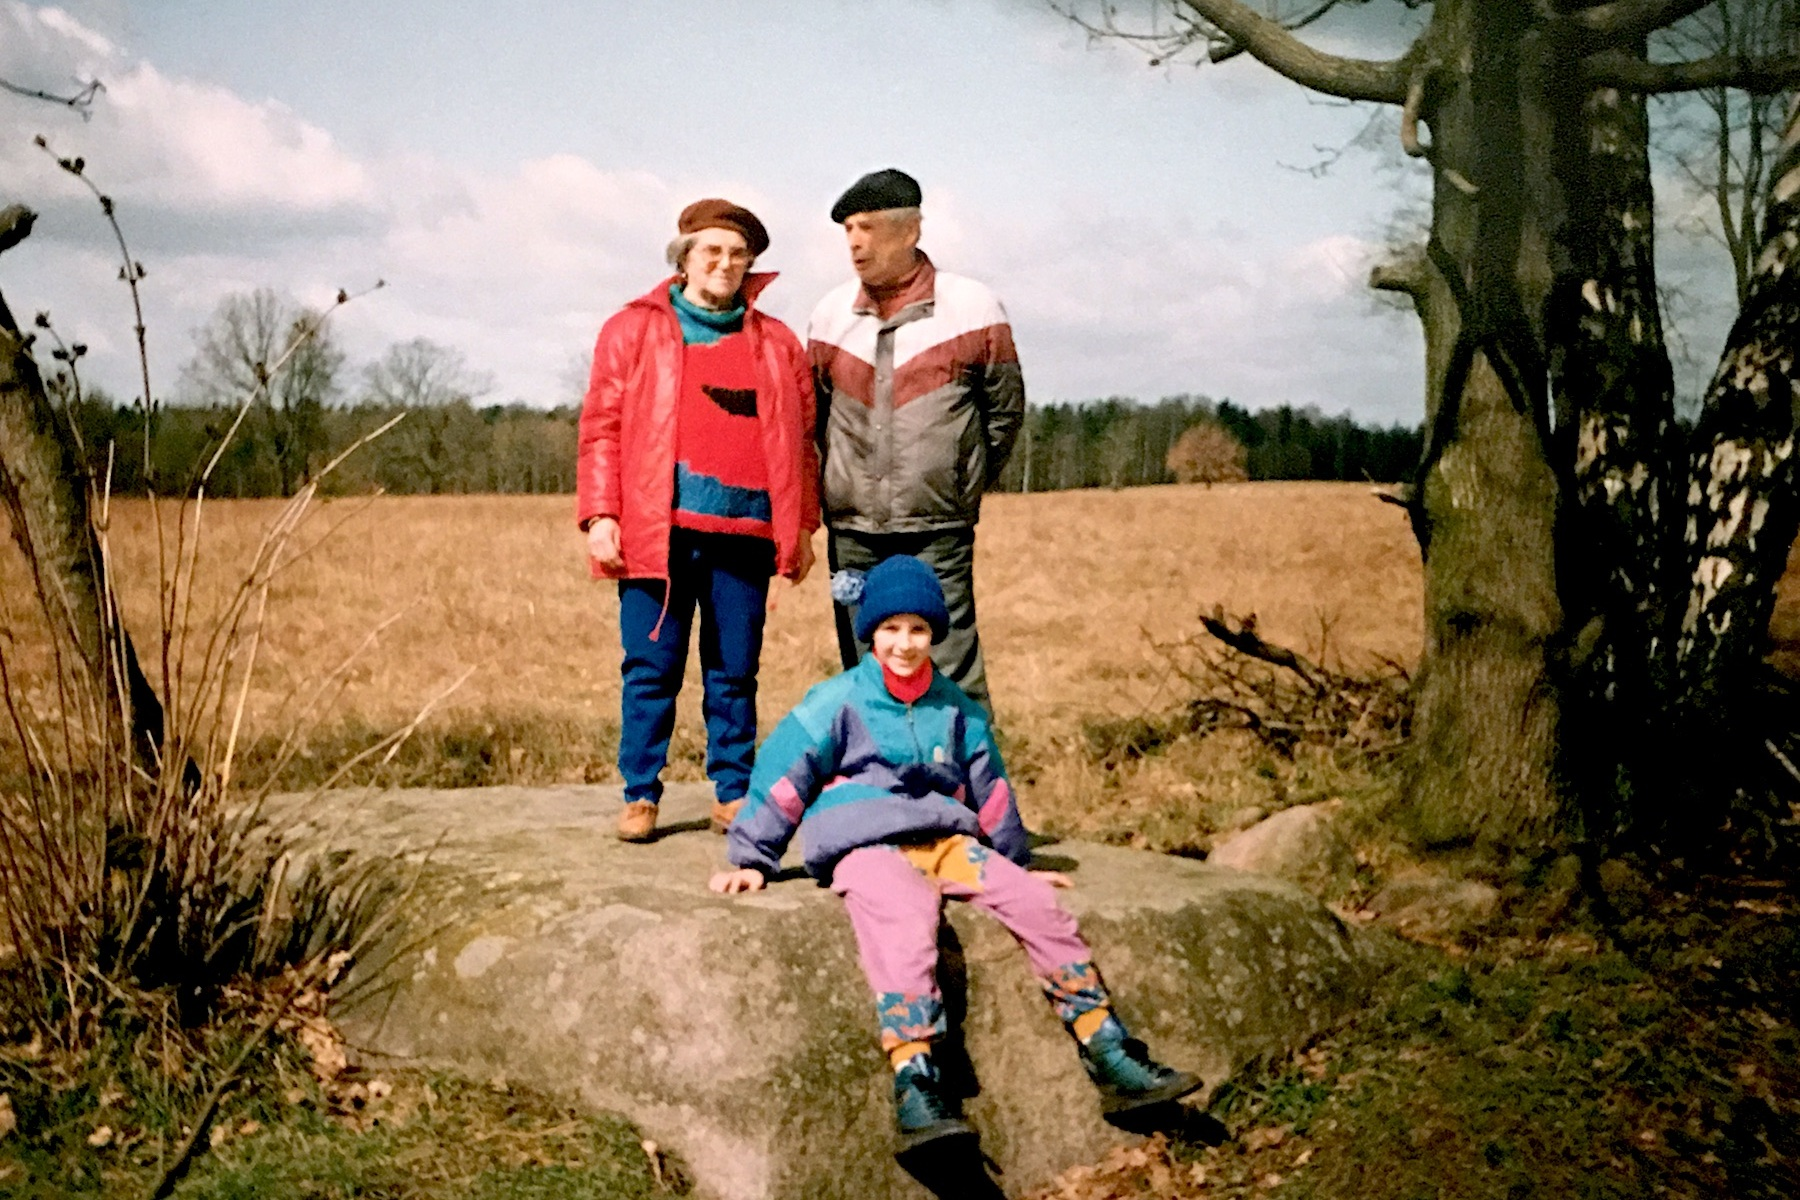 Family Photo Archive  Sindy Butz with grandparents  1991, Blumenthal Stone, Prötzel Stadtstelle, Germany